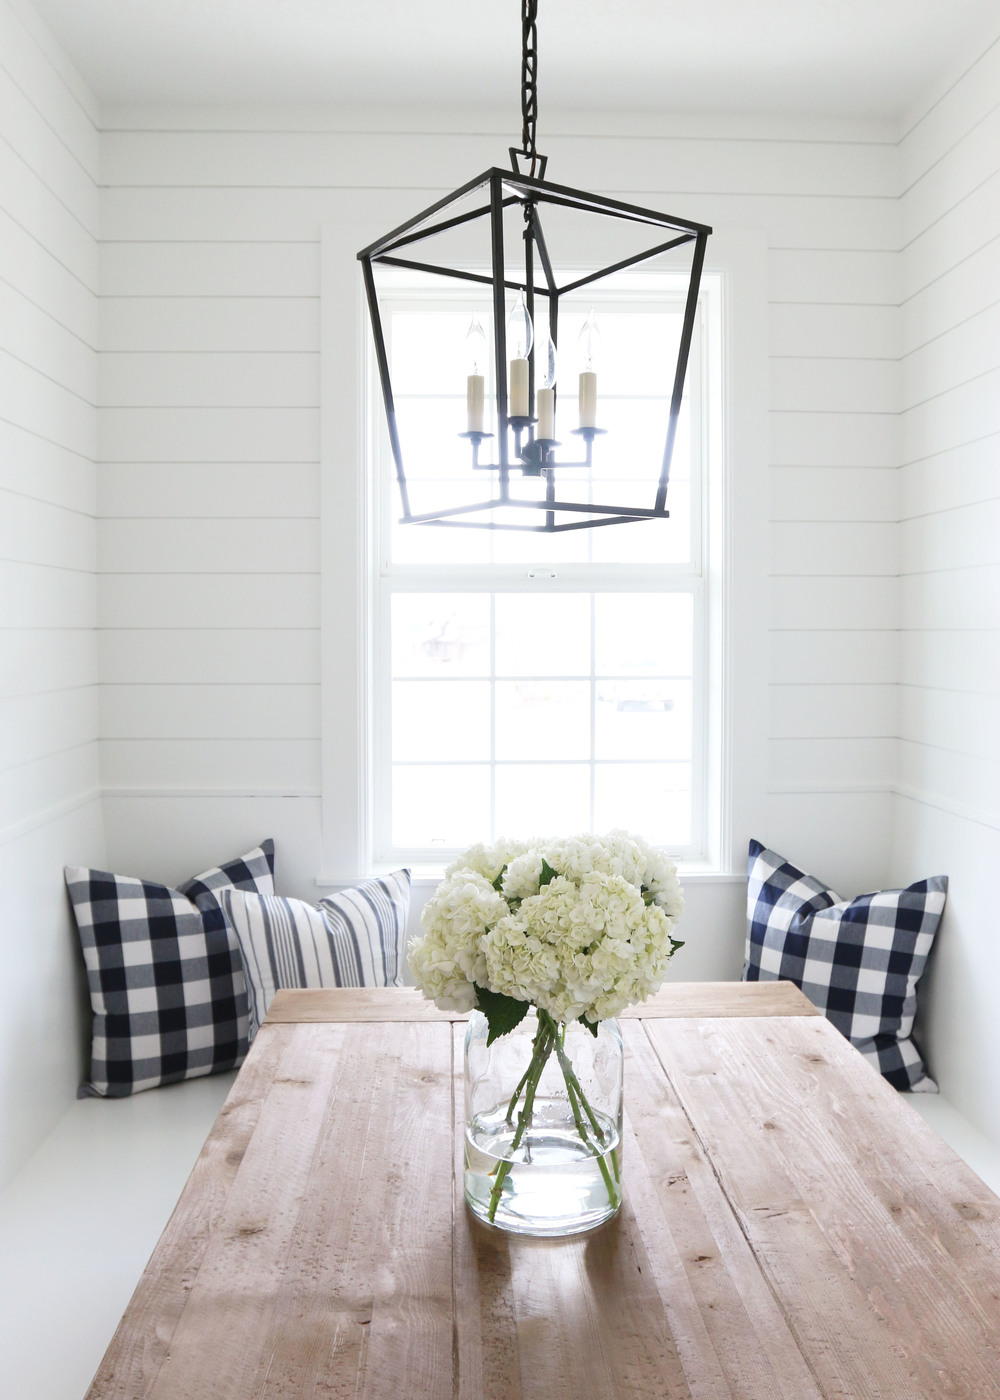 Farmhouse+table+with+lantern+and+shiplap+walls+--+Studio+McGee.jpg